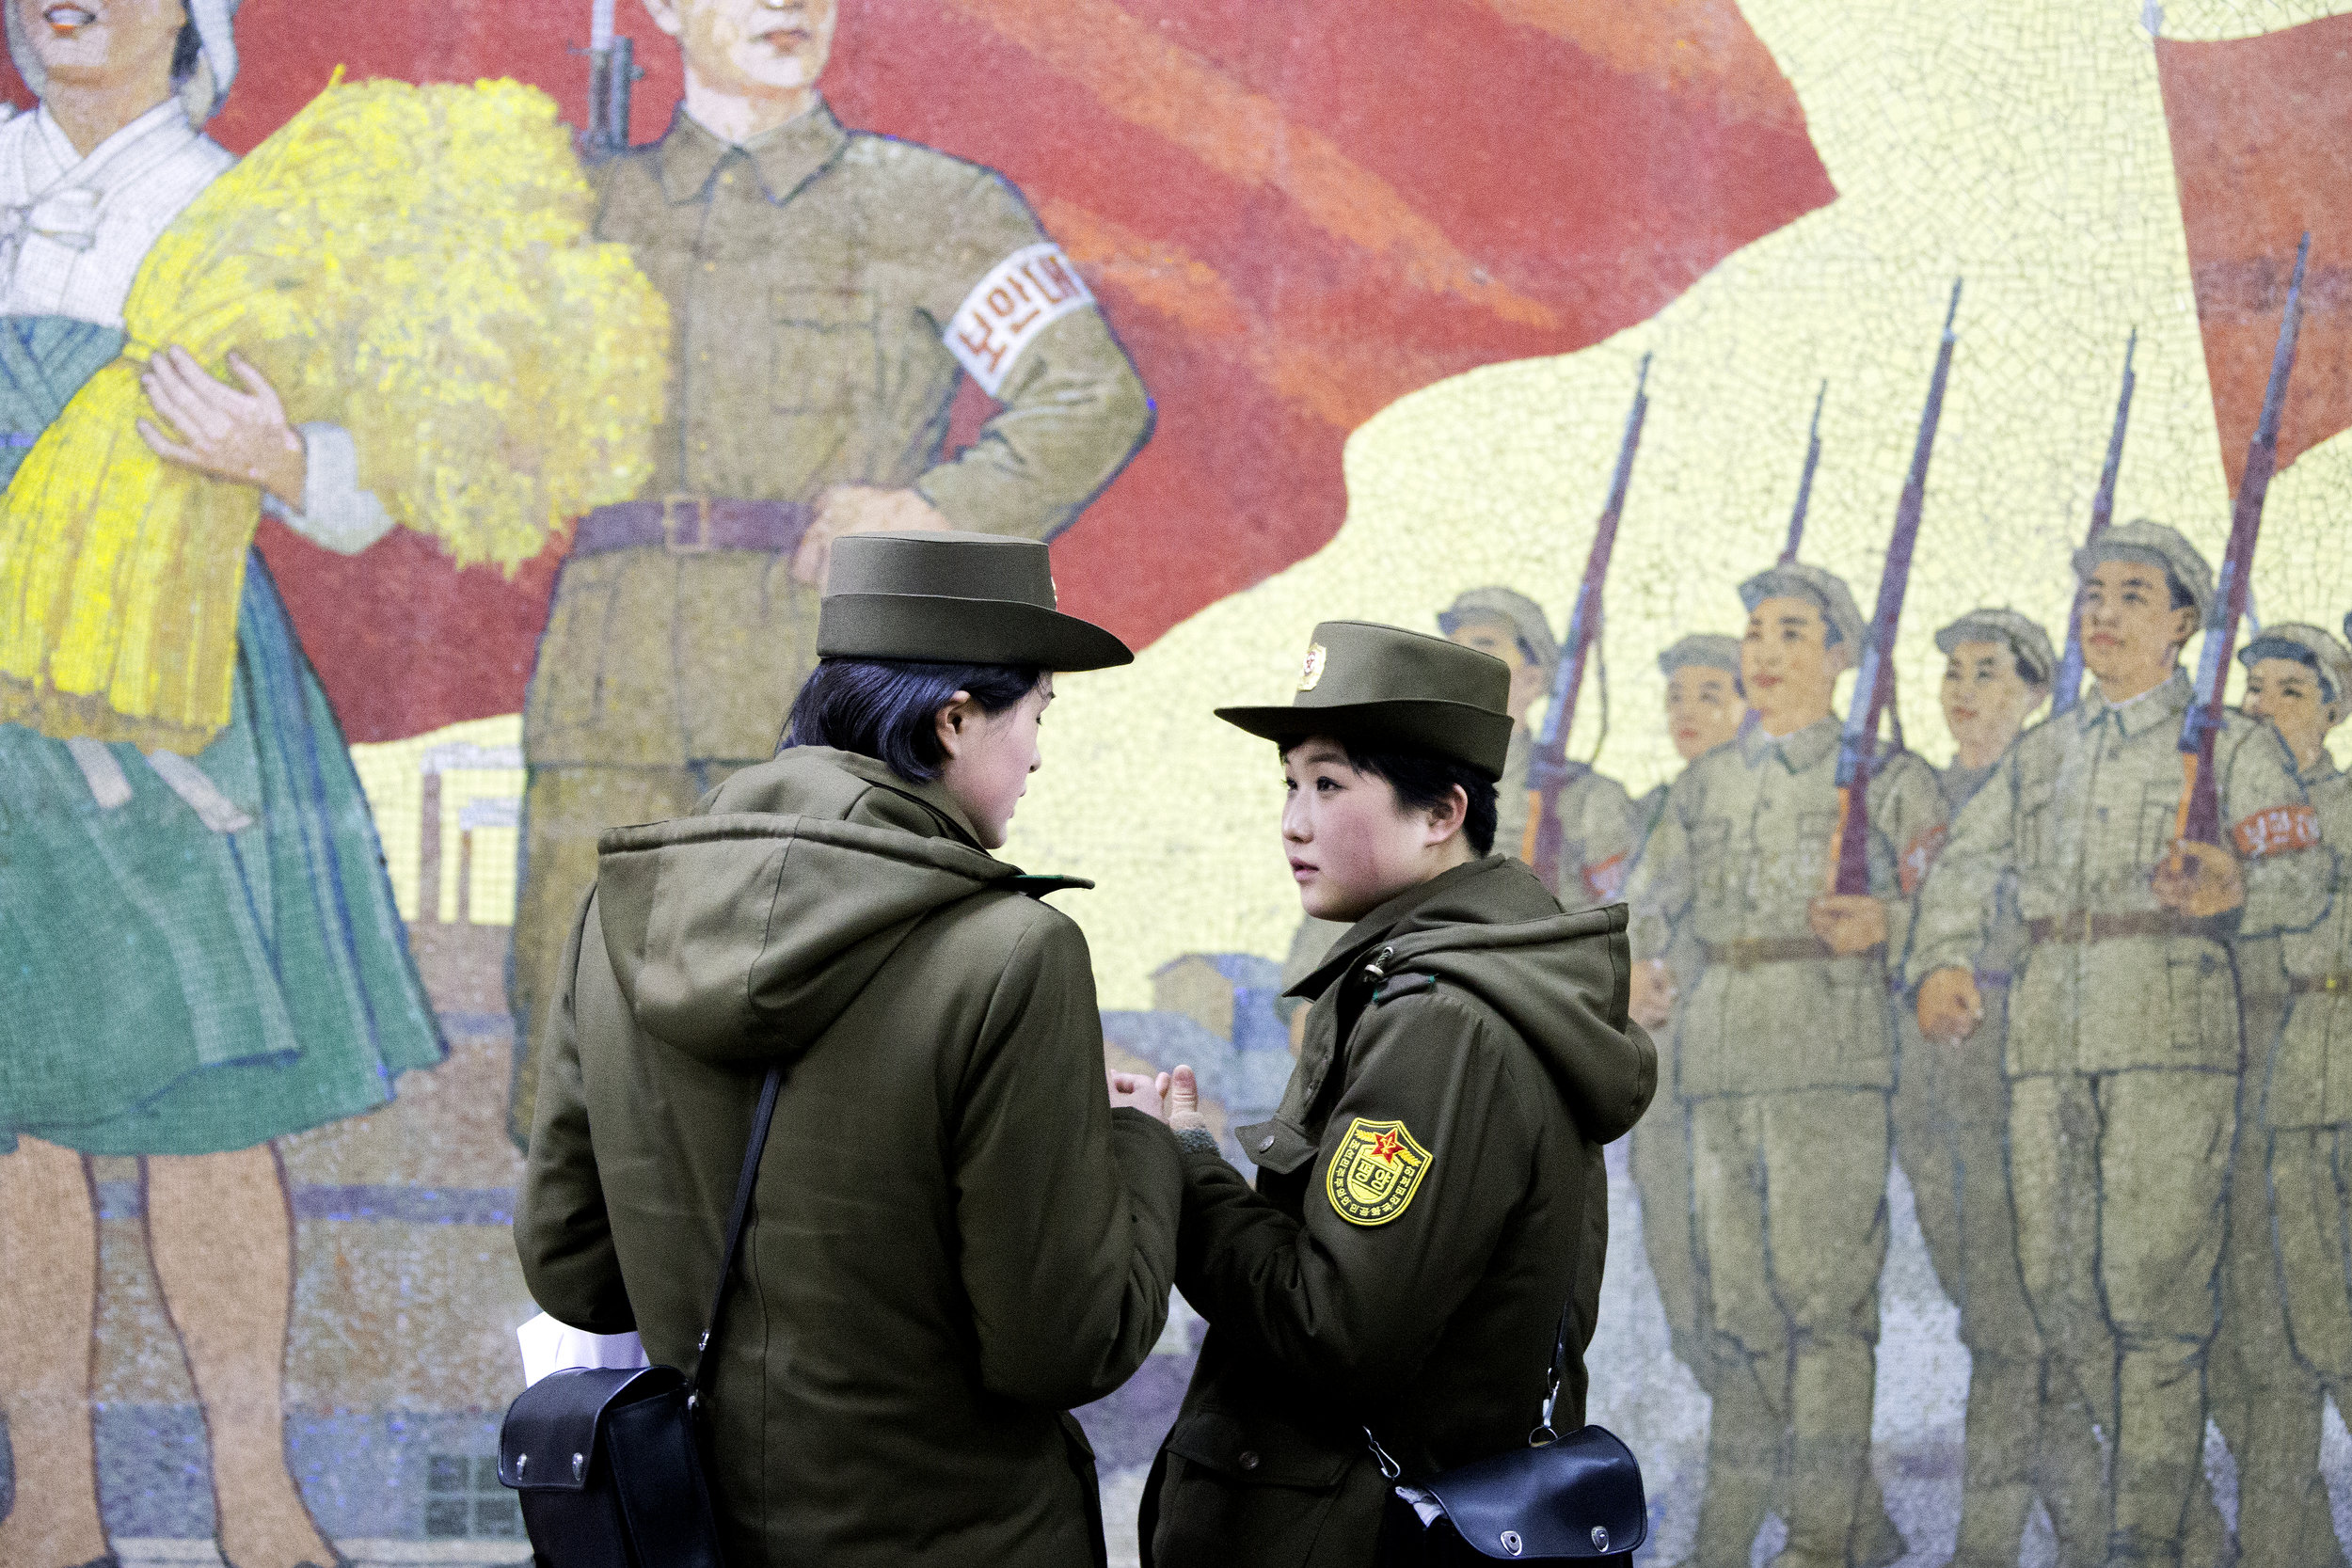 Two security guards stand on the platform of Kaeson Station in the Pyongyang Metro.